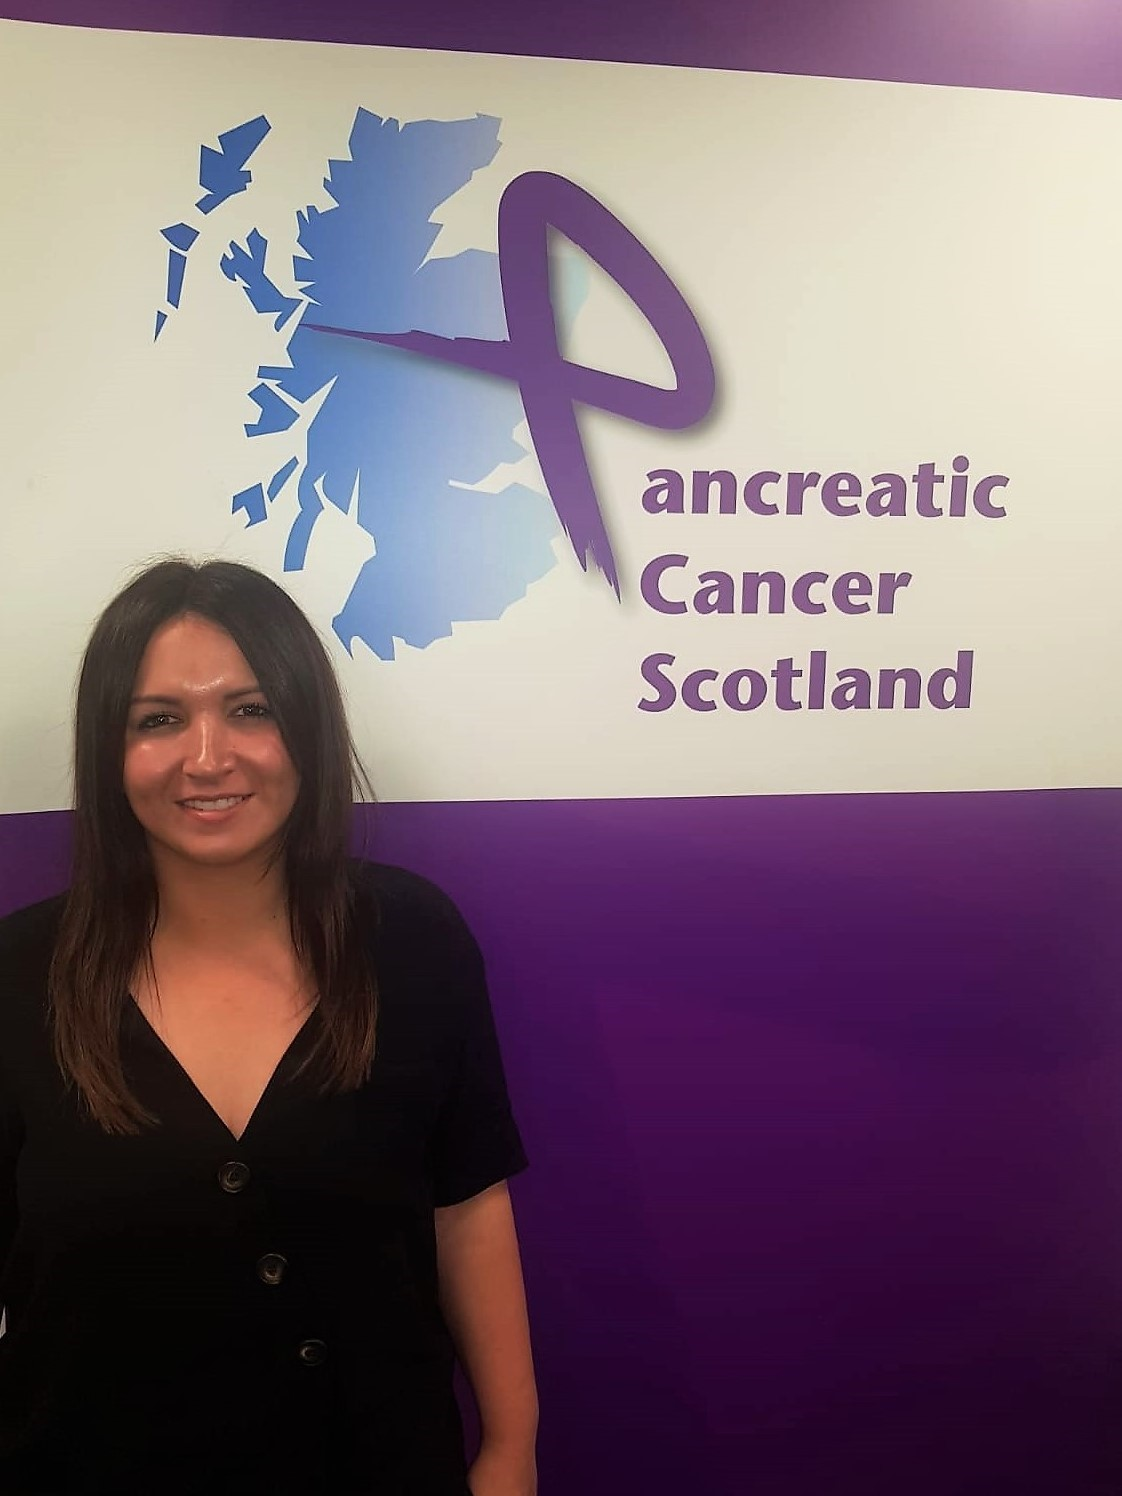 New support for patients fighting pancreatic cancer